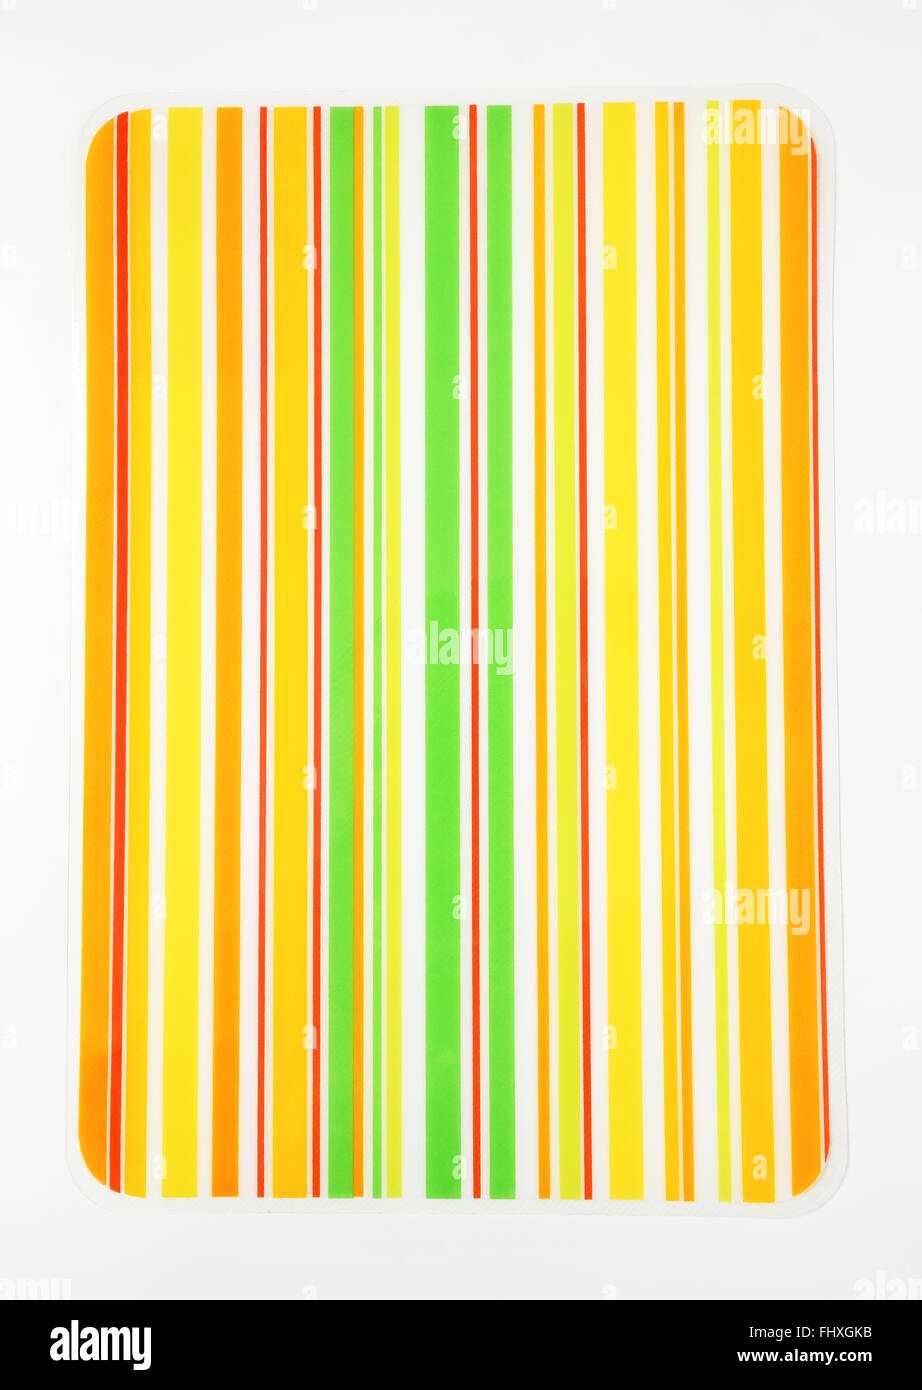 Laminated brightly colored striped table mat - Stock Image